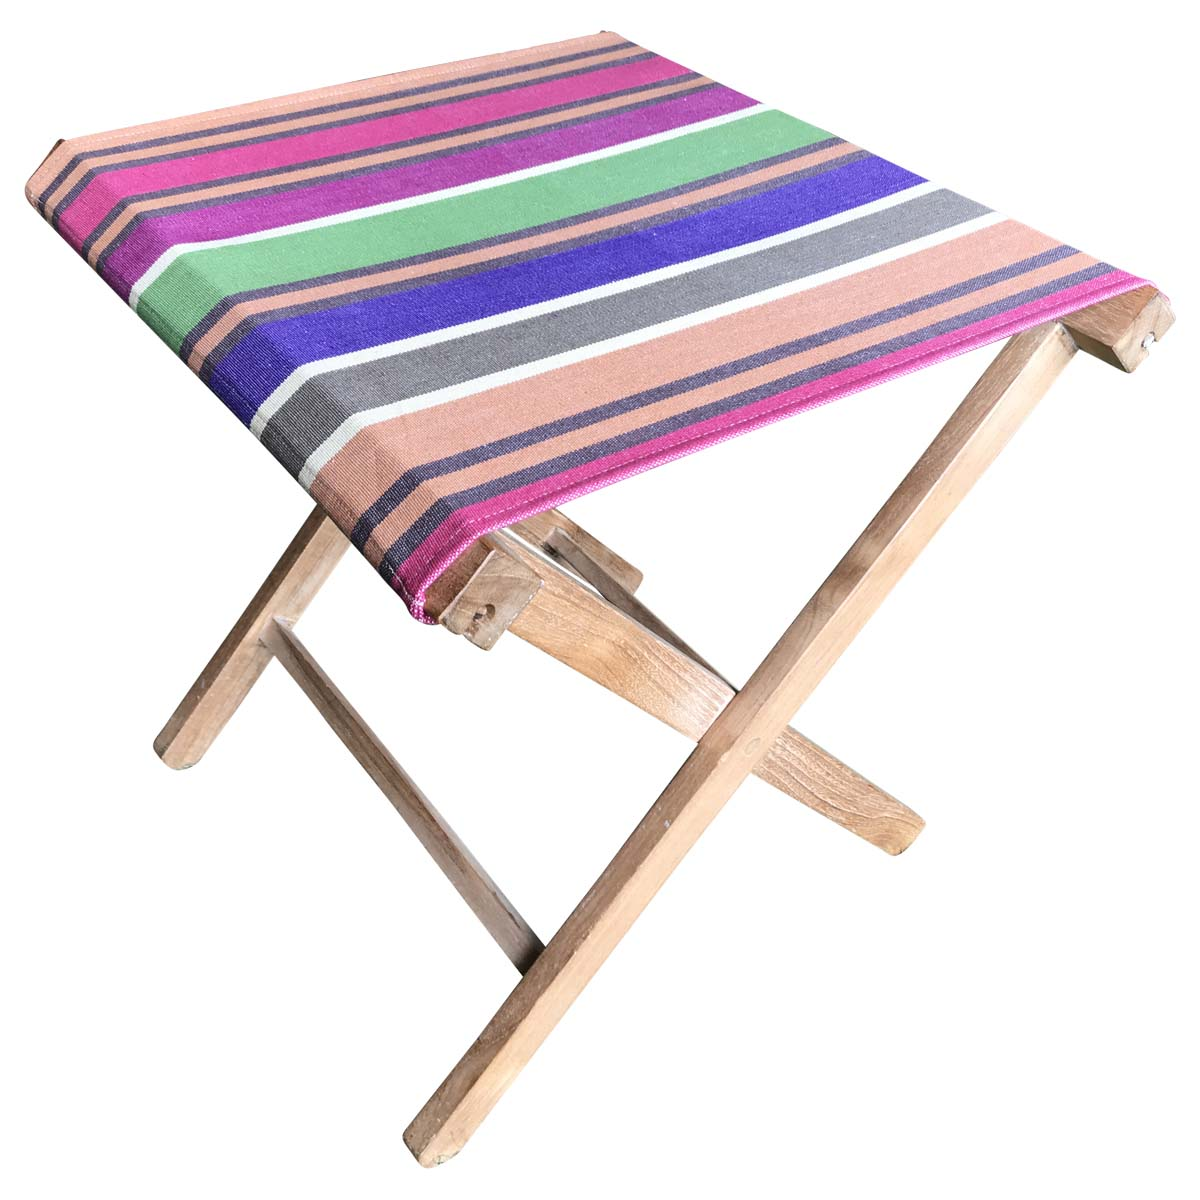 Portable Folding Stools with Striped Seats caramel, beige, purple